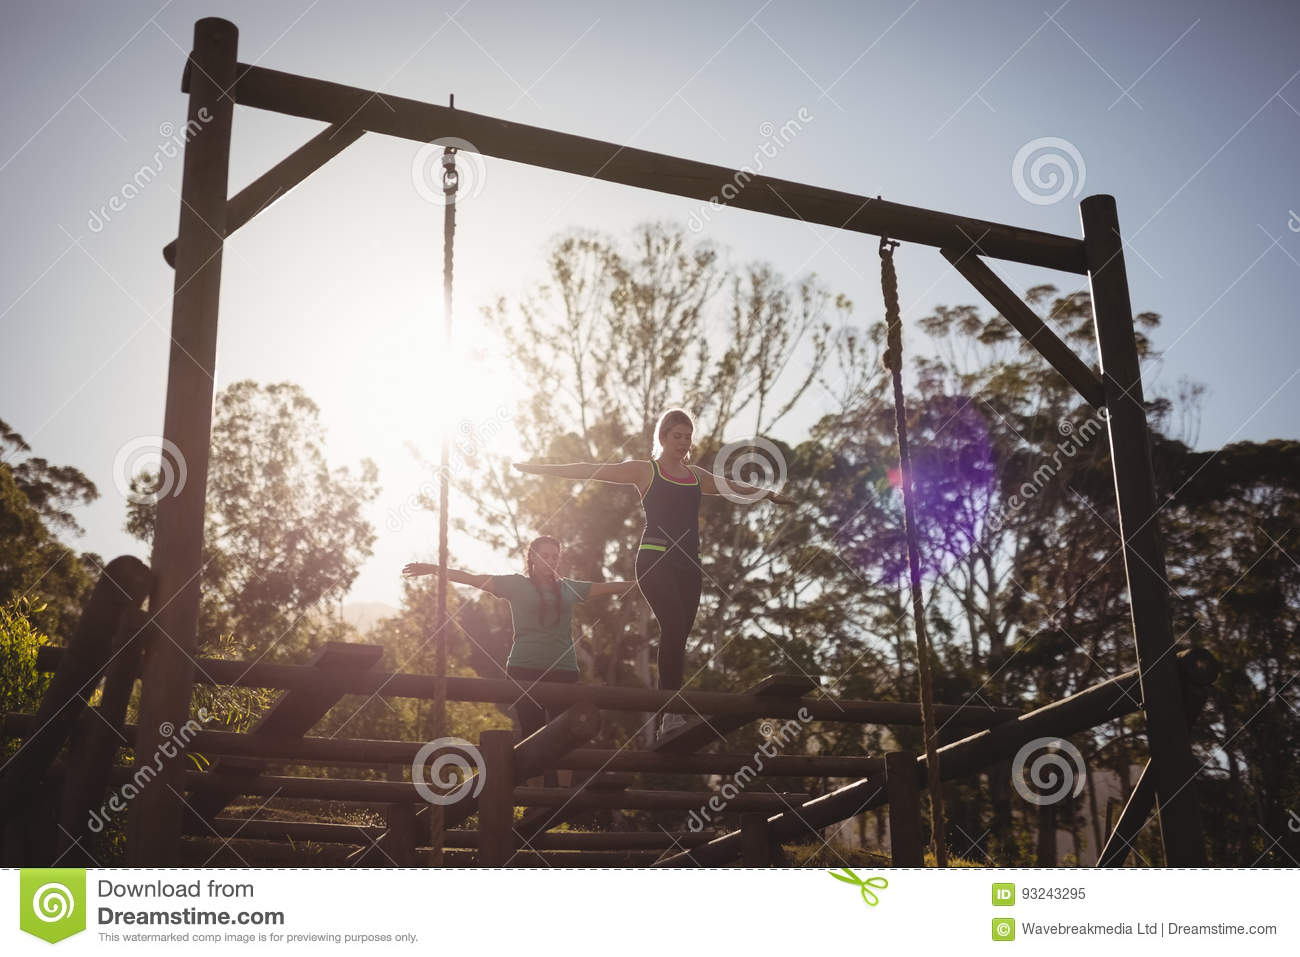 Women walking on outdoor equipment during obstacle course